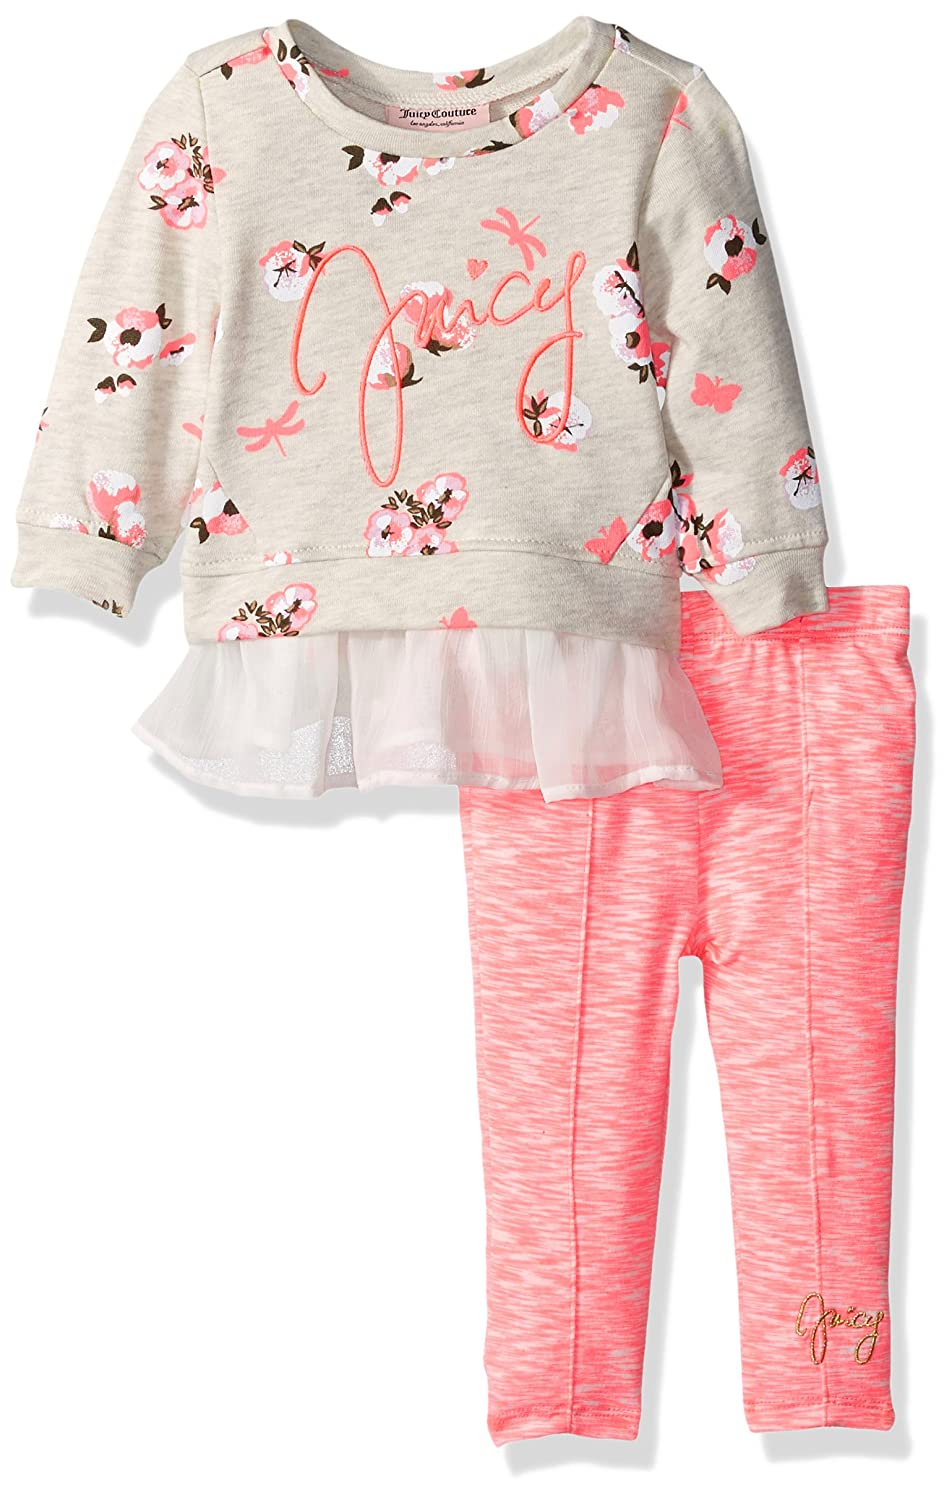 567c70129d03e Pink elasticized waist leggings with Juicy logo at the bottom. Long  sleeves. On trend Juicy Couture outfit for girls